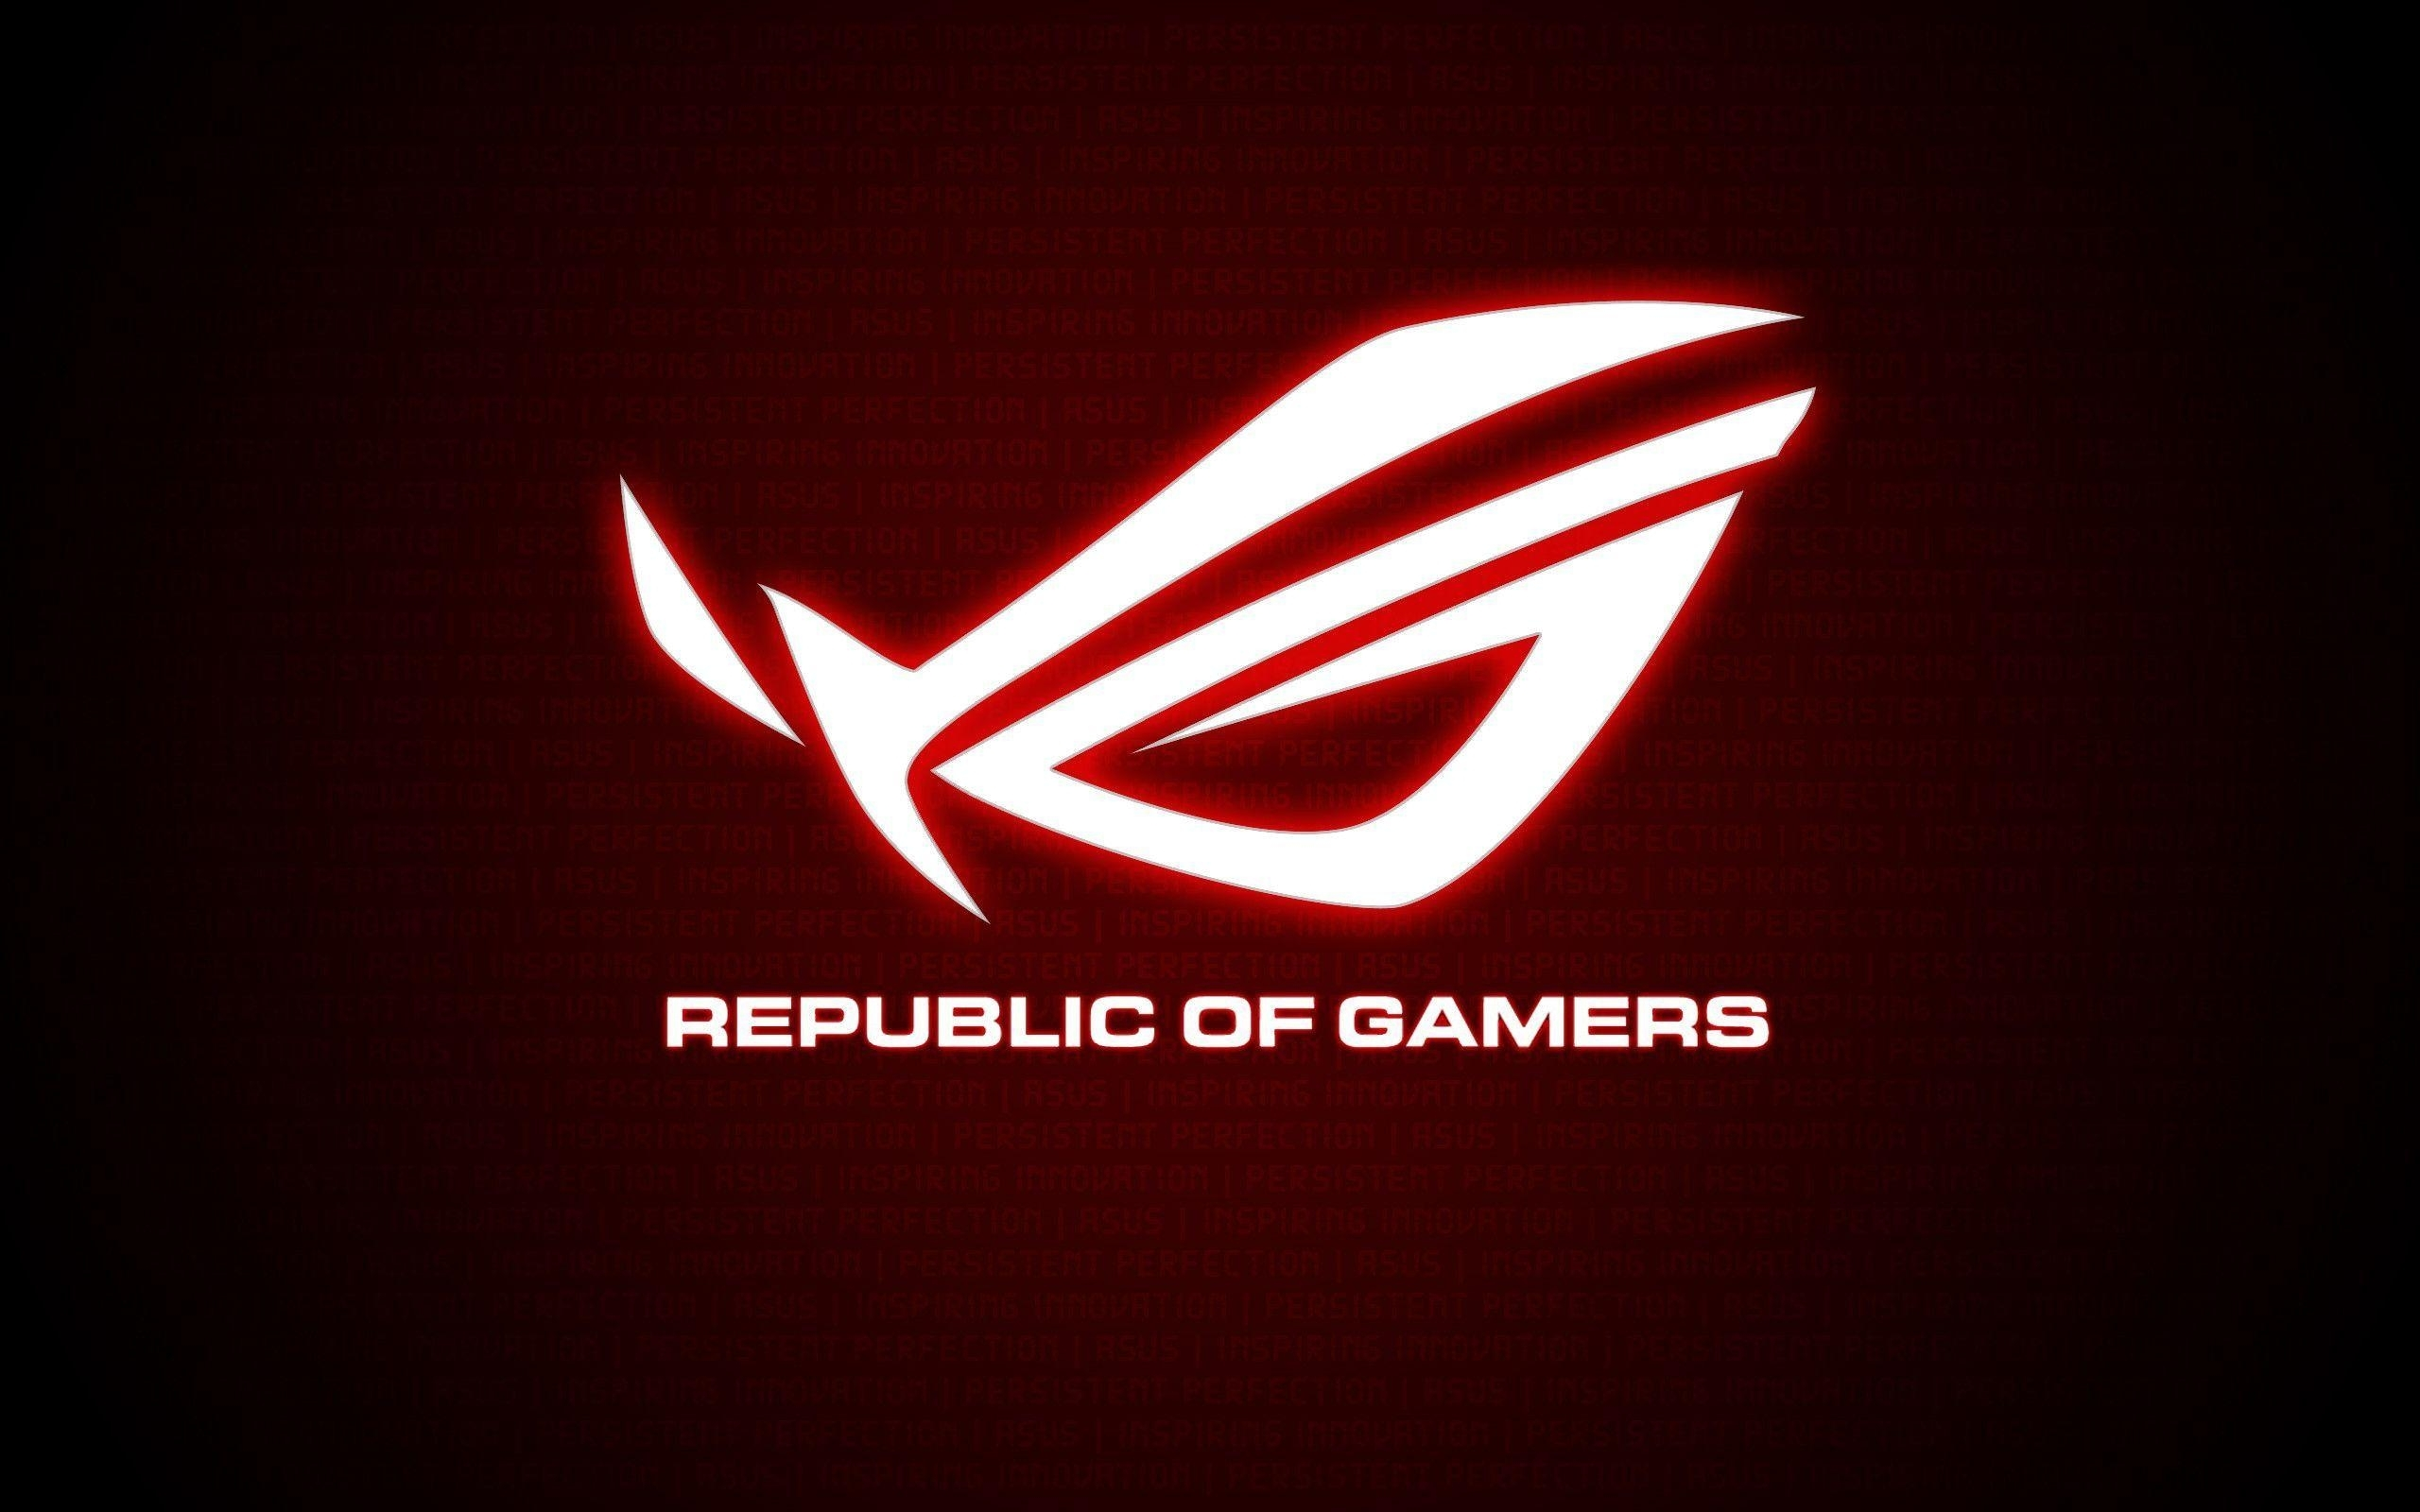 10 Latest Republic Of Gamers Screensaver FULL HD 1920×1080 For PC Background